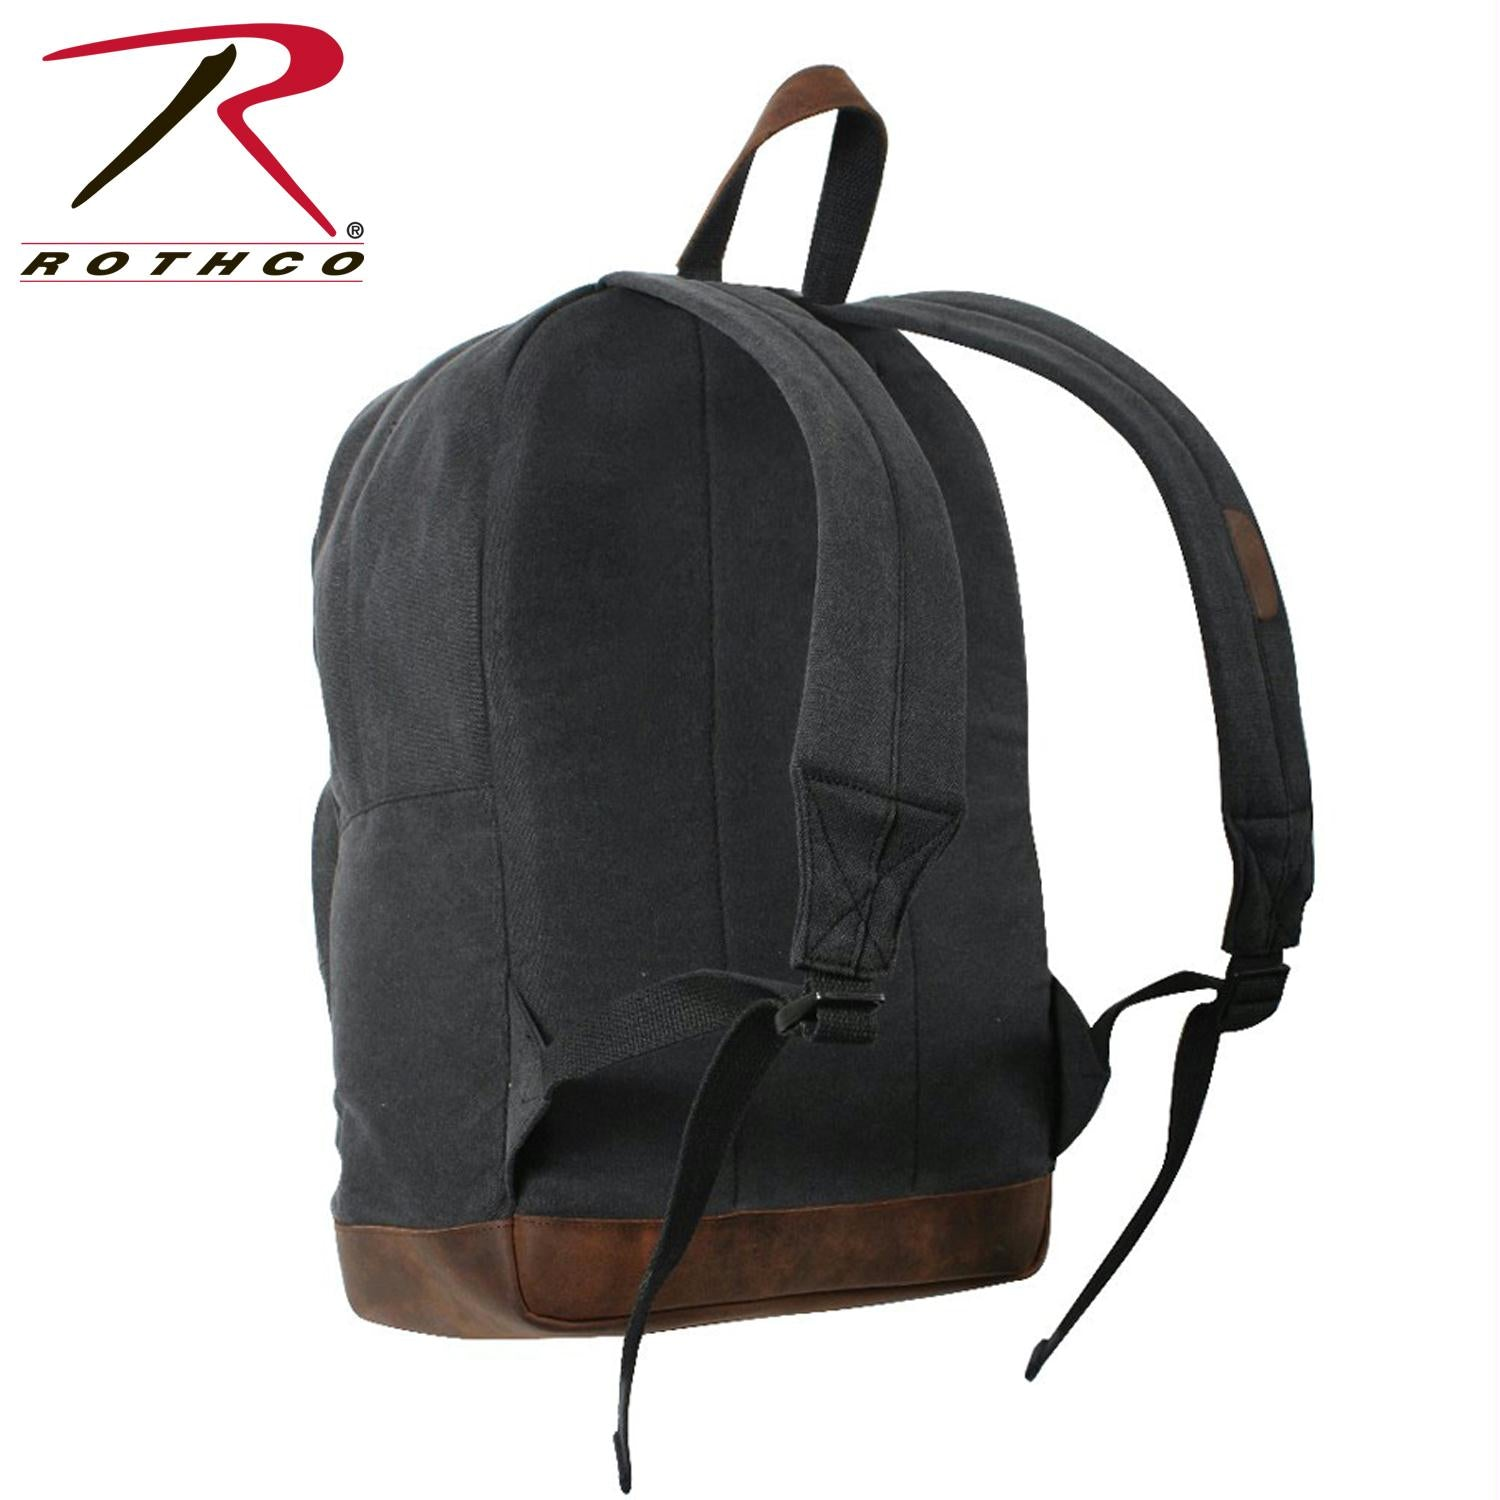 Rothco Vintage Canvas Teardrop Backpack With Leather Accents - Black / Brown